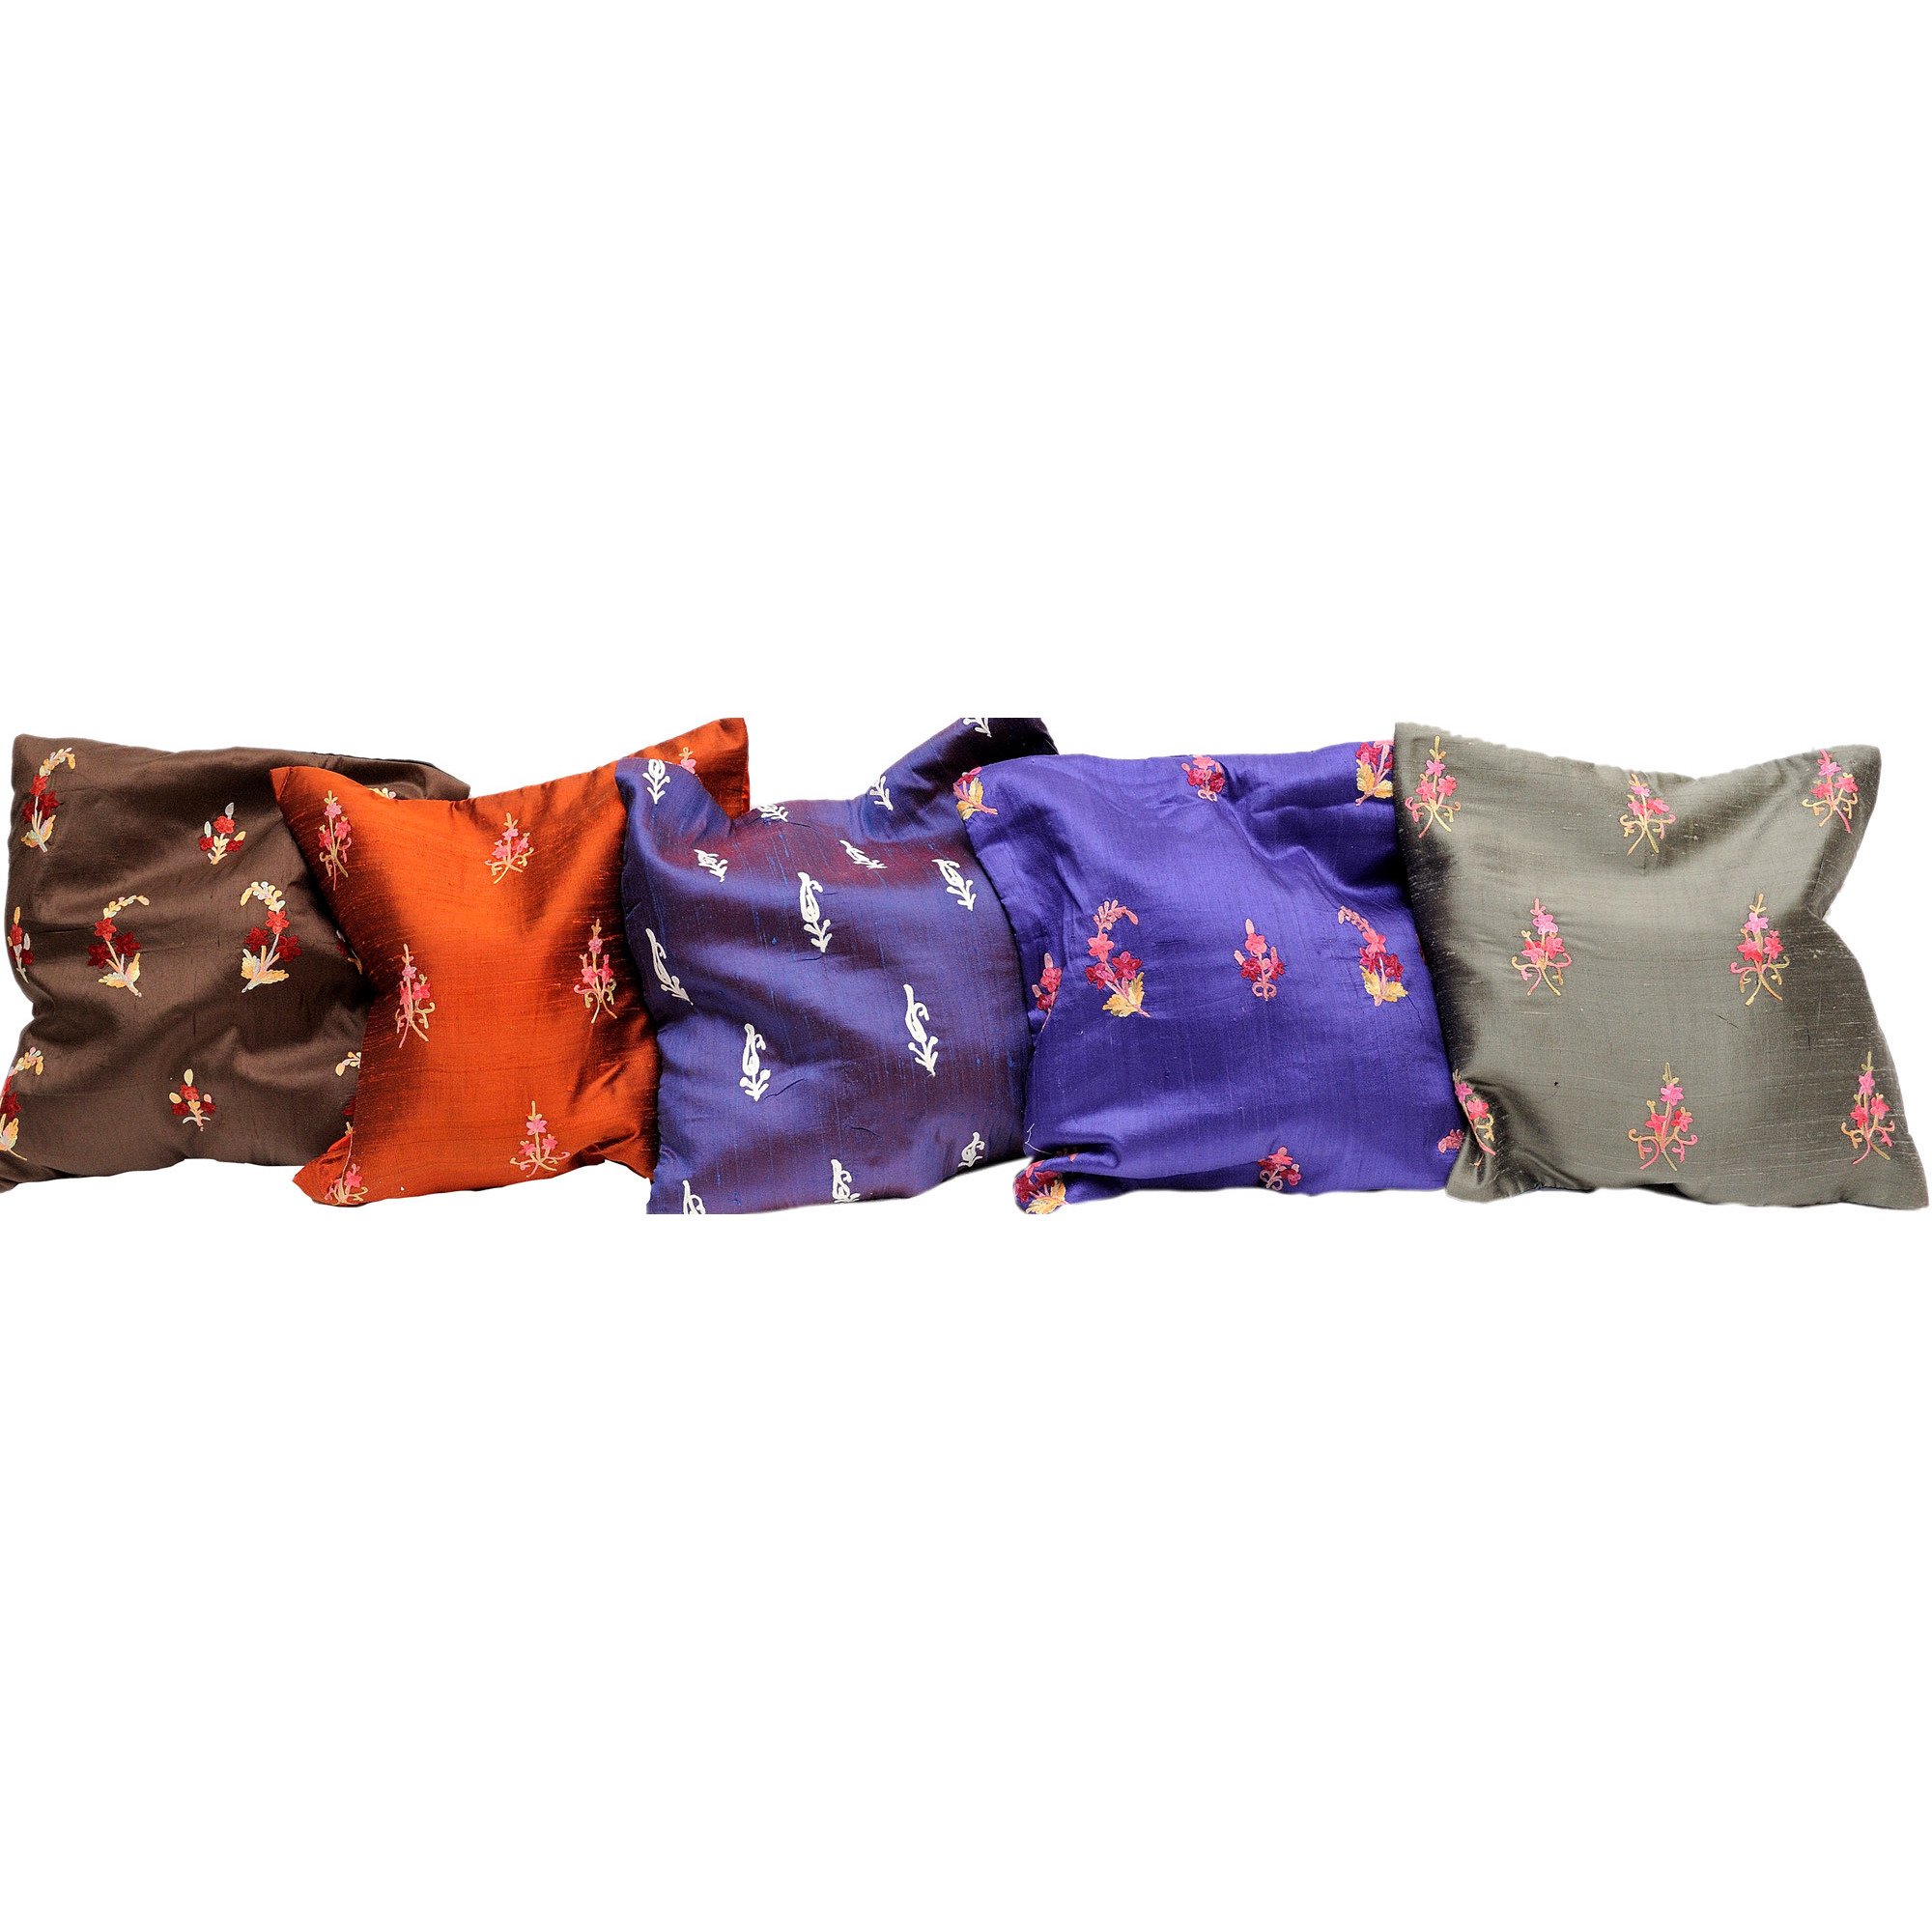 Lot of Five Cushion Covers from Kashmir with Ari Embroidered Bootis